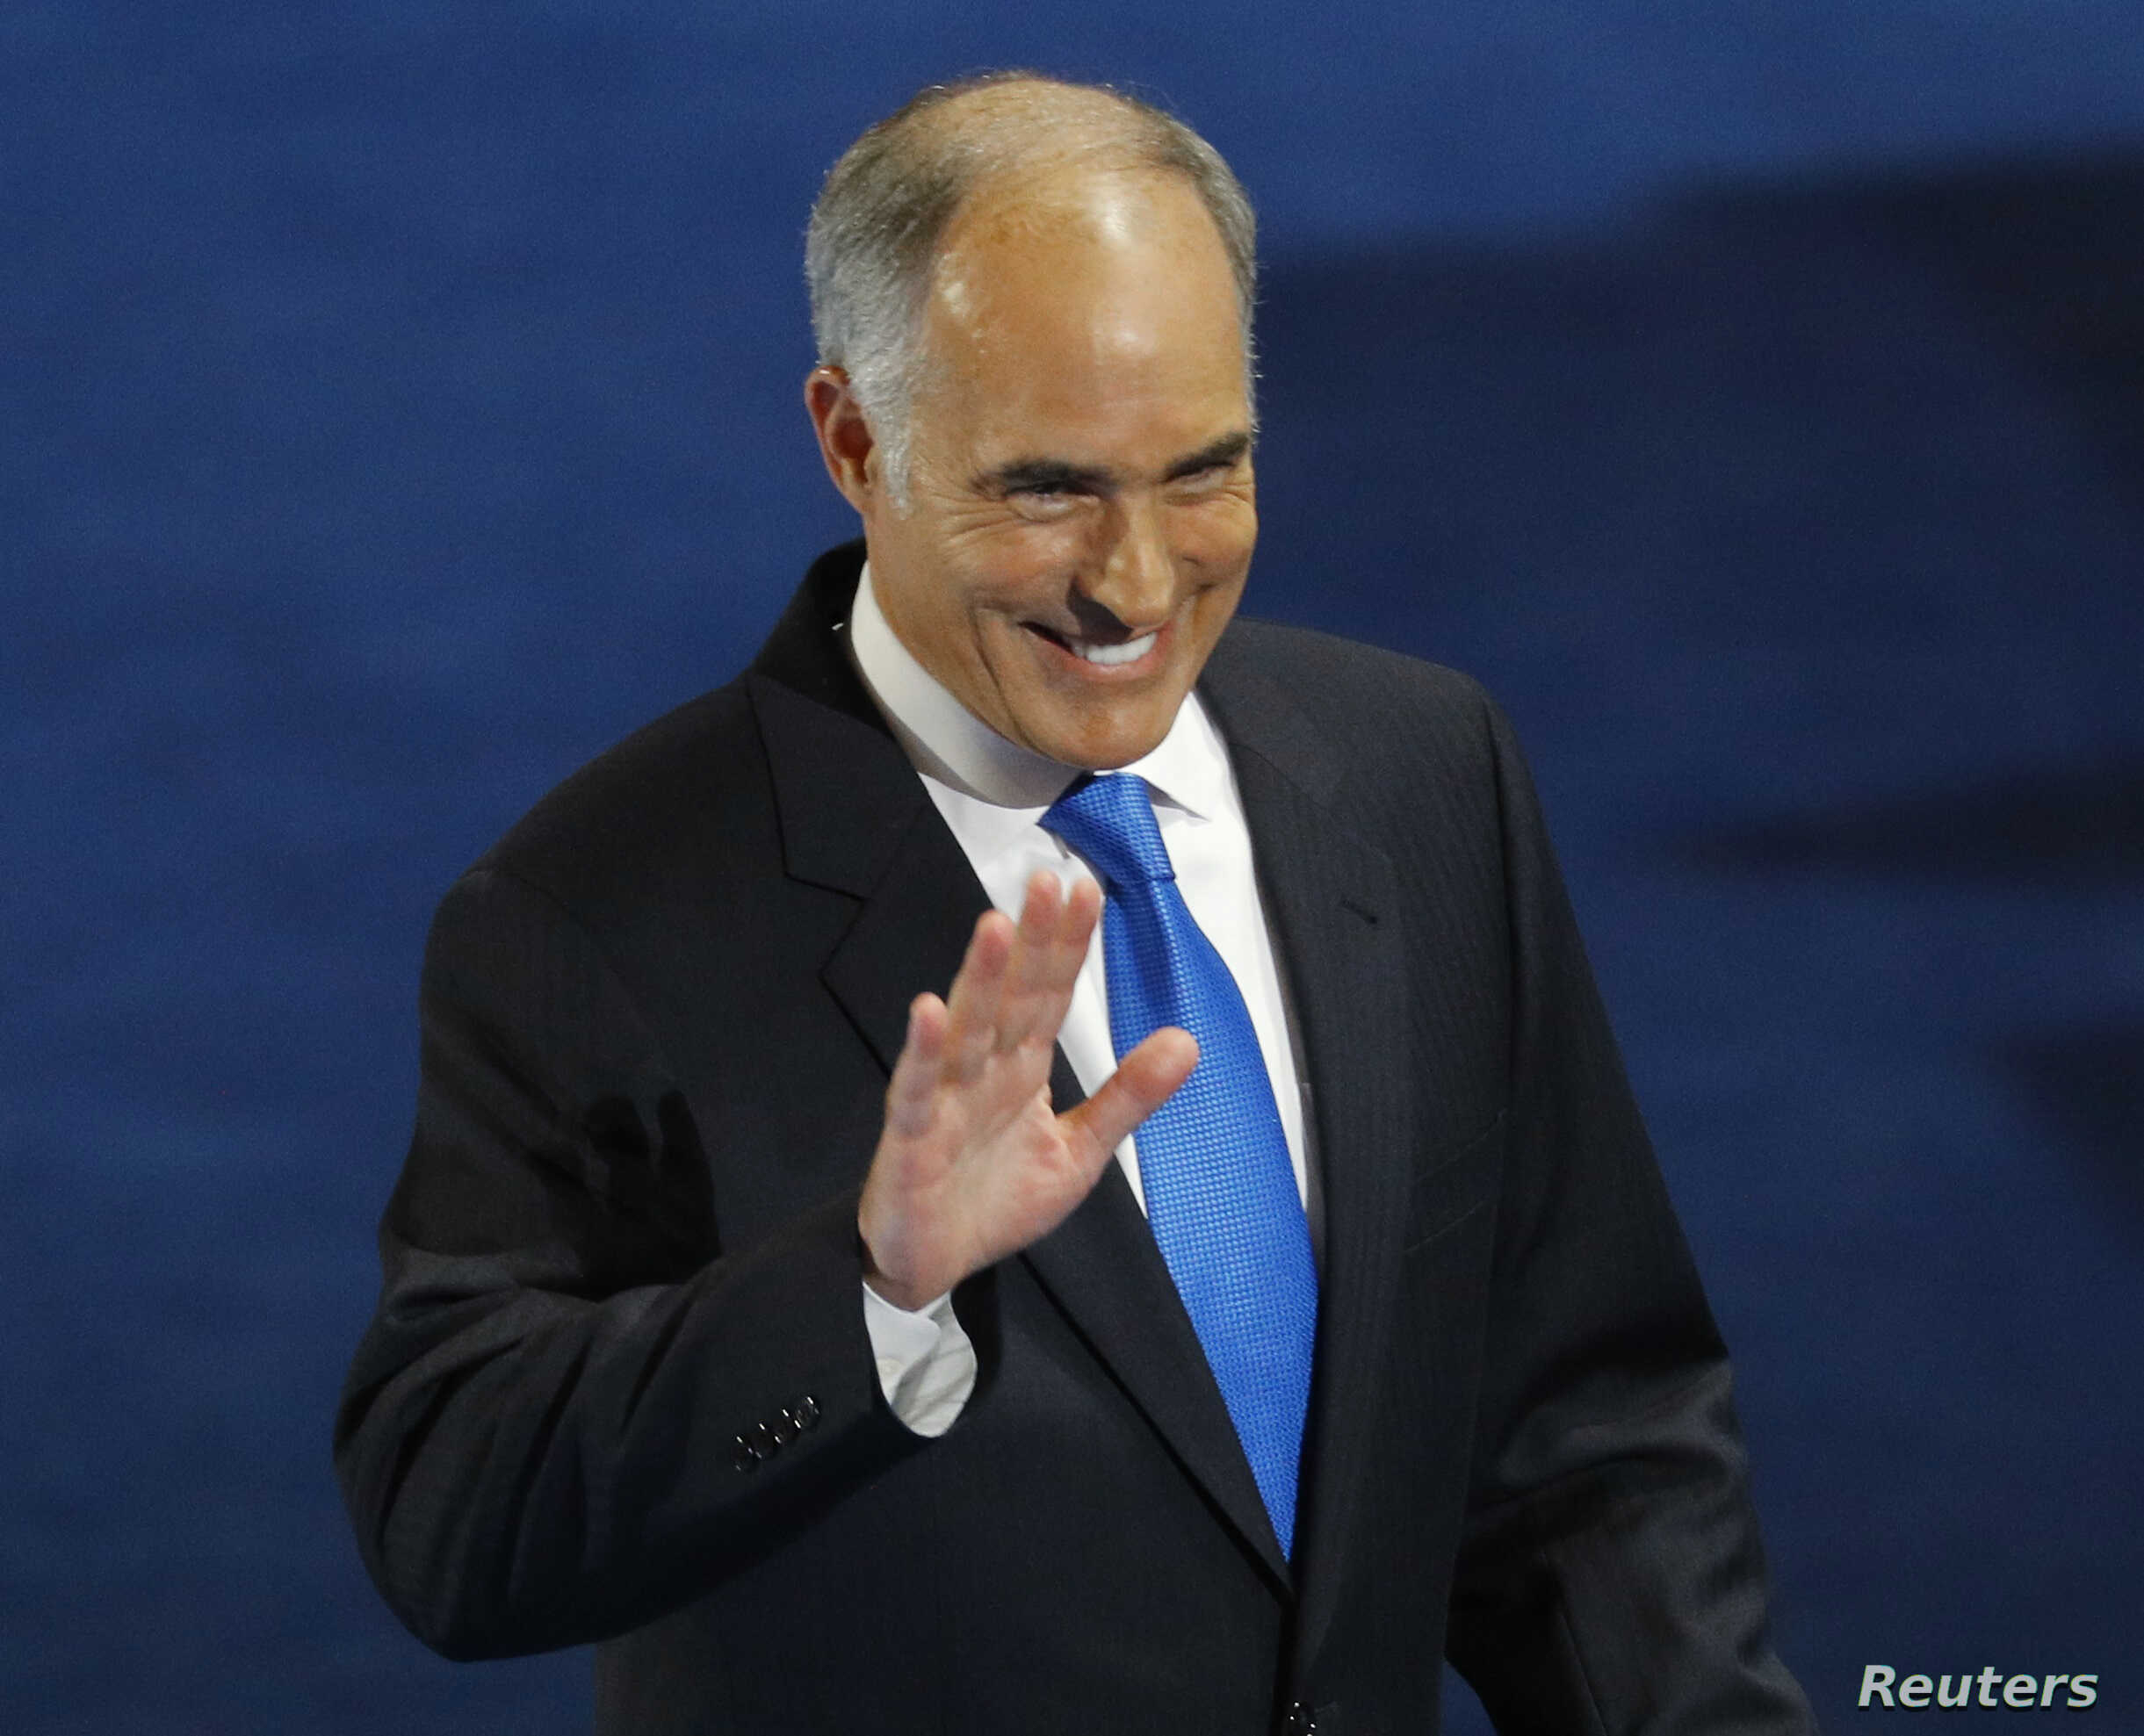 U.S. Sen. Bob Casey, D-Pa., waves after speaking at the Democratic National Convention in Philadelphia, Pennsylvania, July 25, 2016.